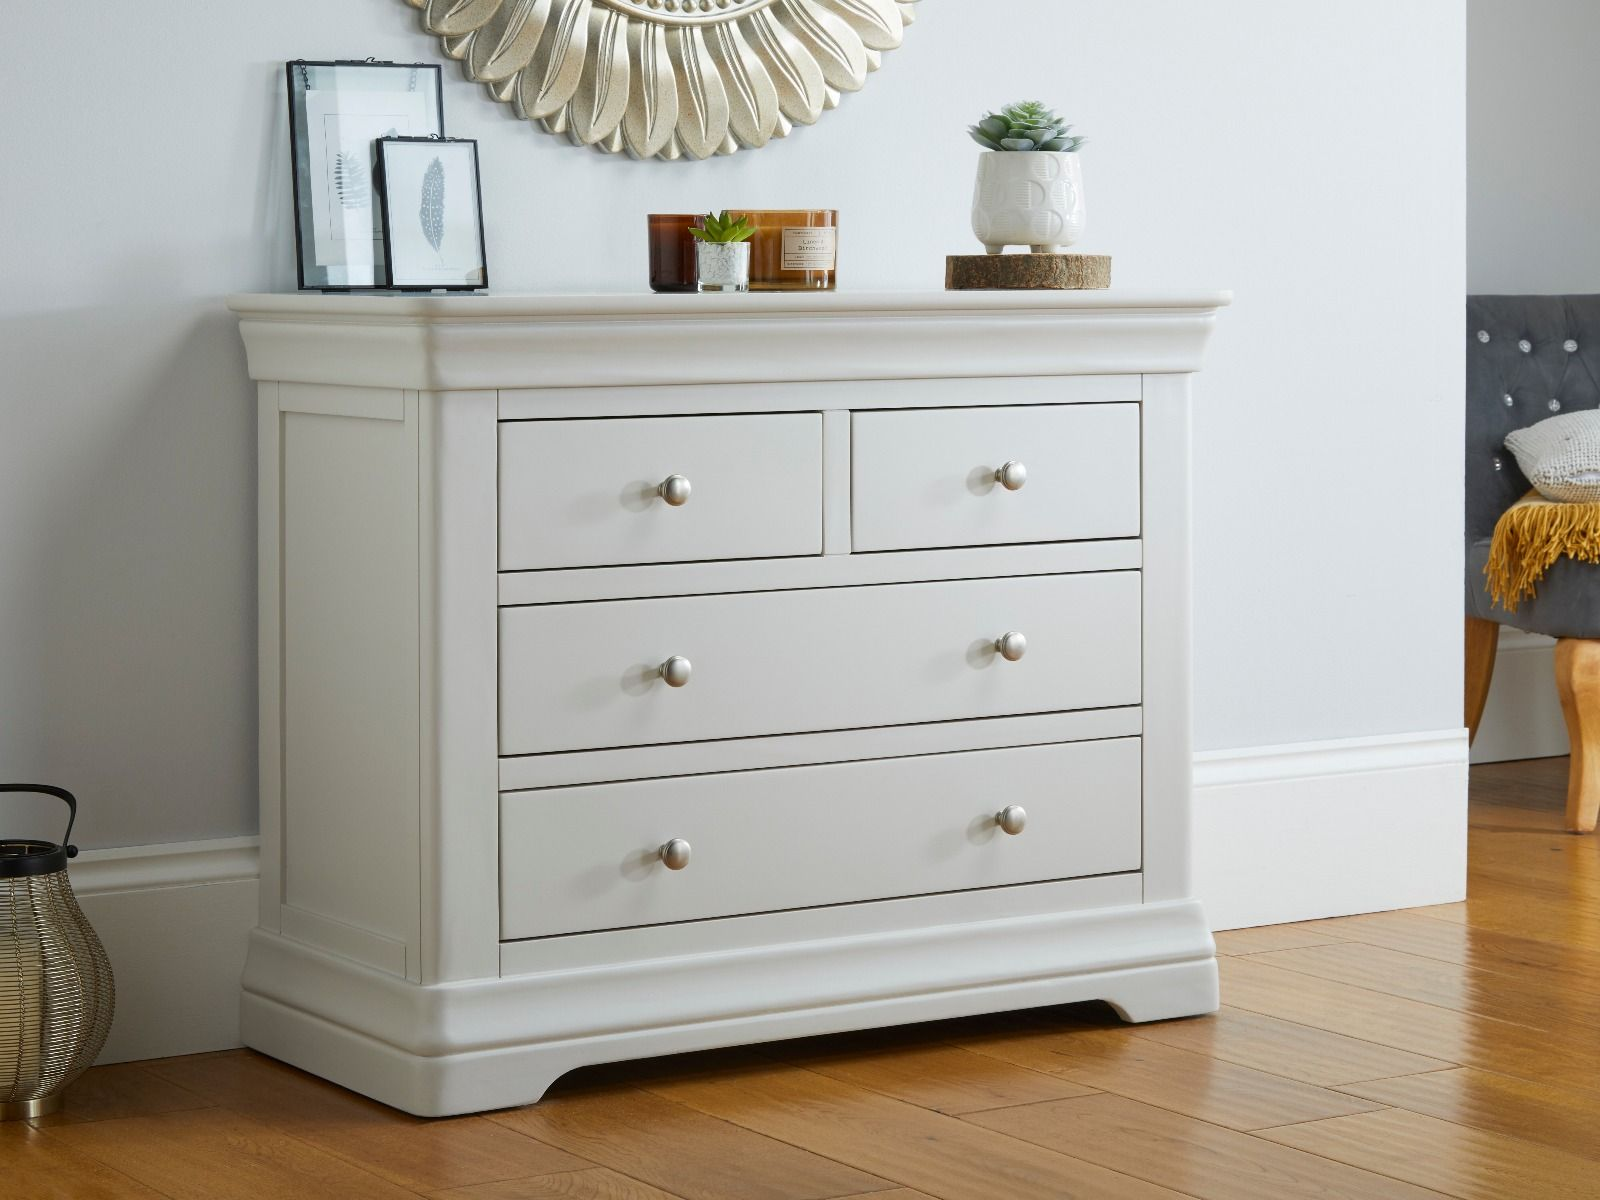 Toulouse Grey Painted 2 Over 2 Chest Of Drawers Fast Free Delivery Top Furniture